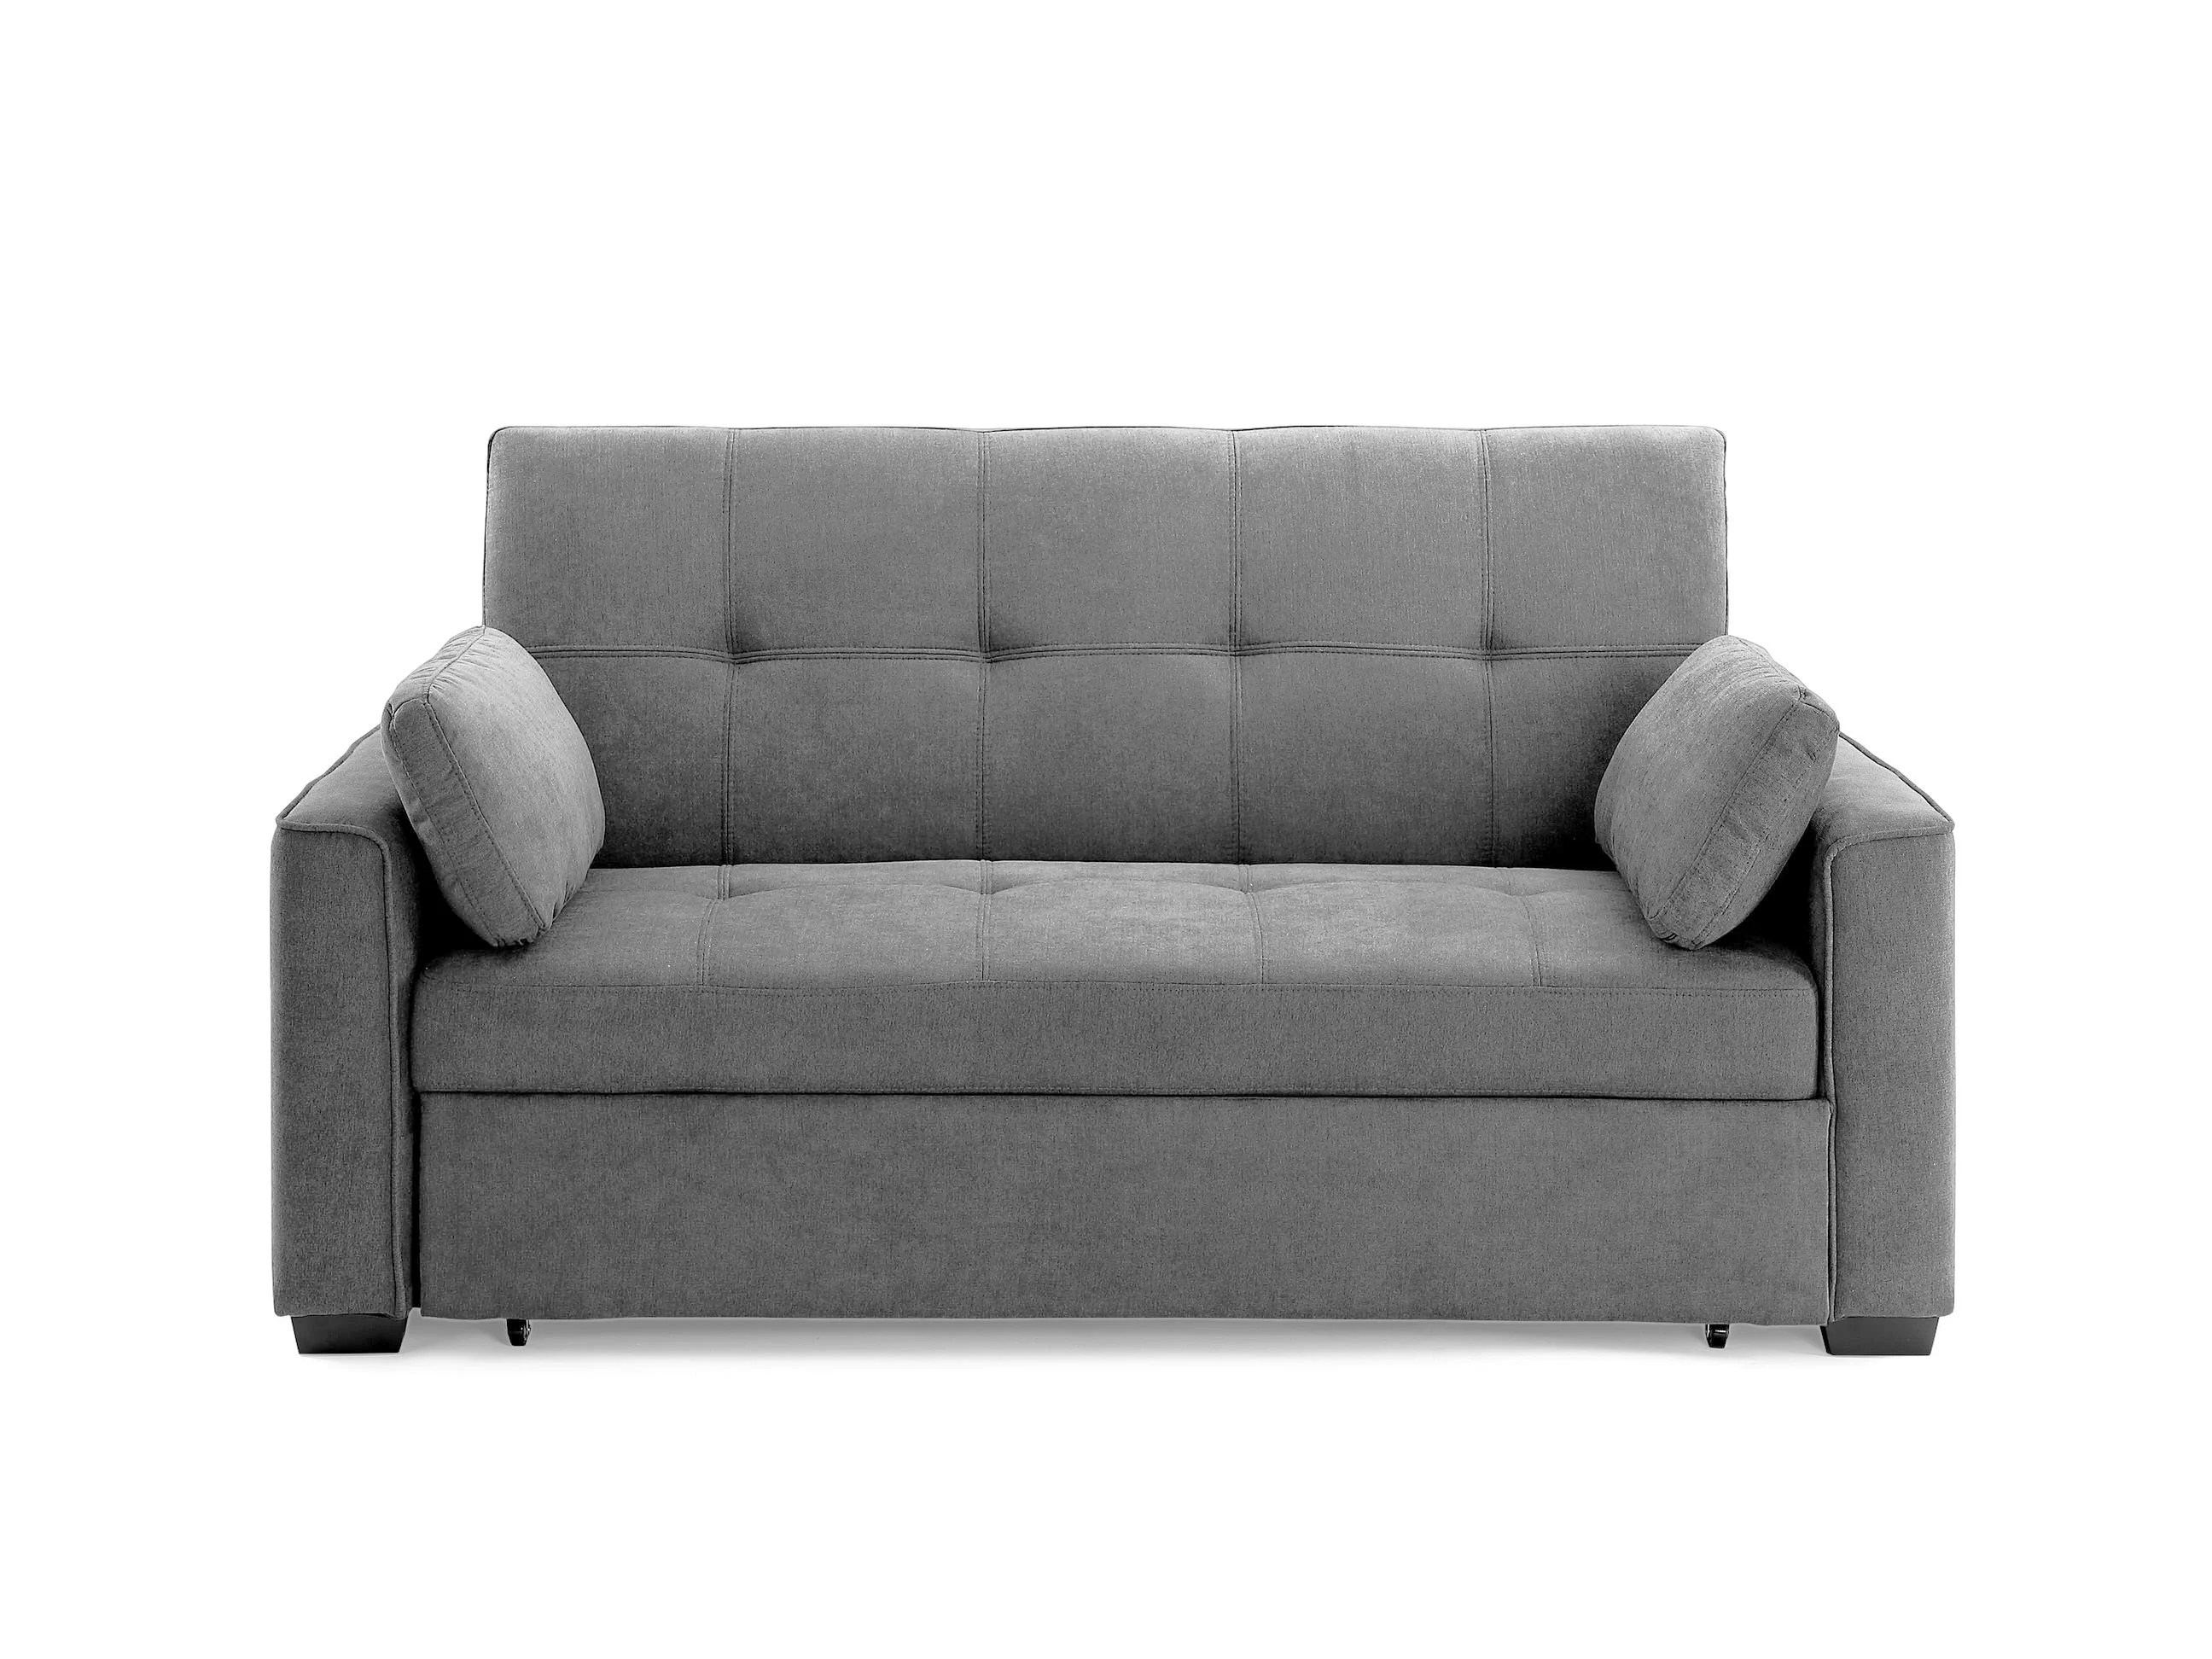 Nantucket Loveseat Queen Size Sleeper Light Gray By Night Day Furniture